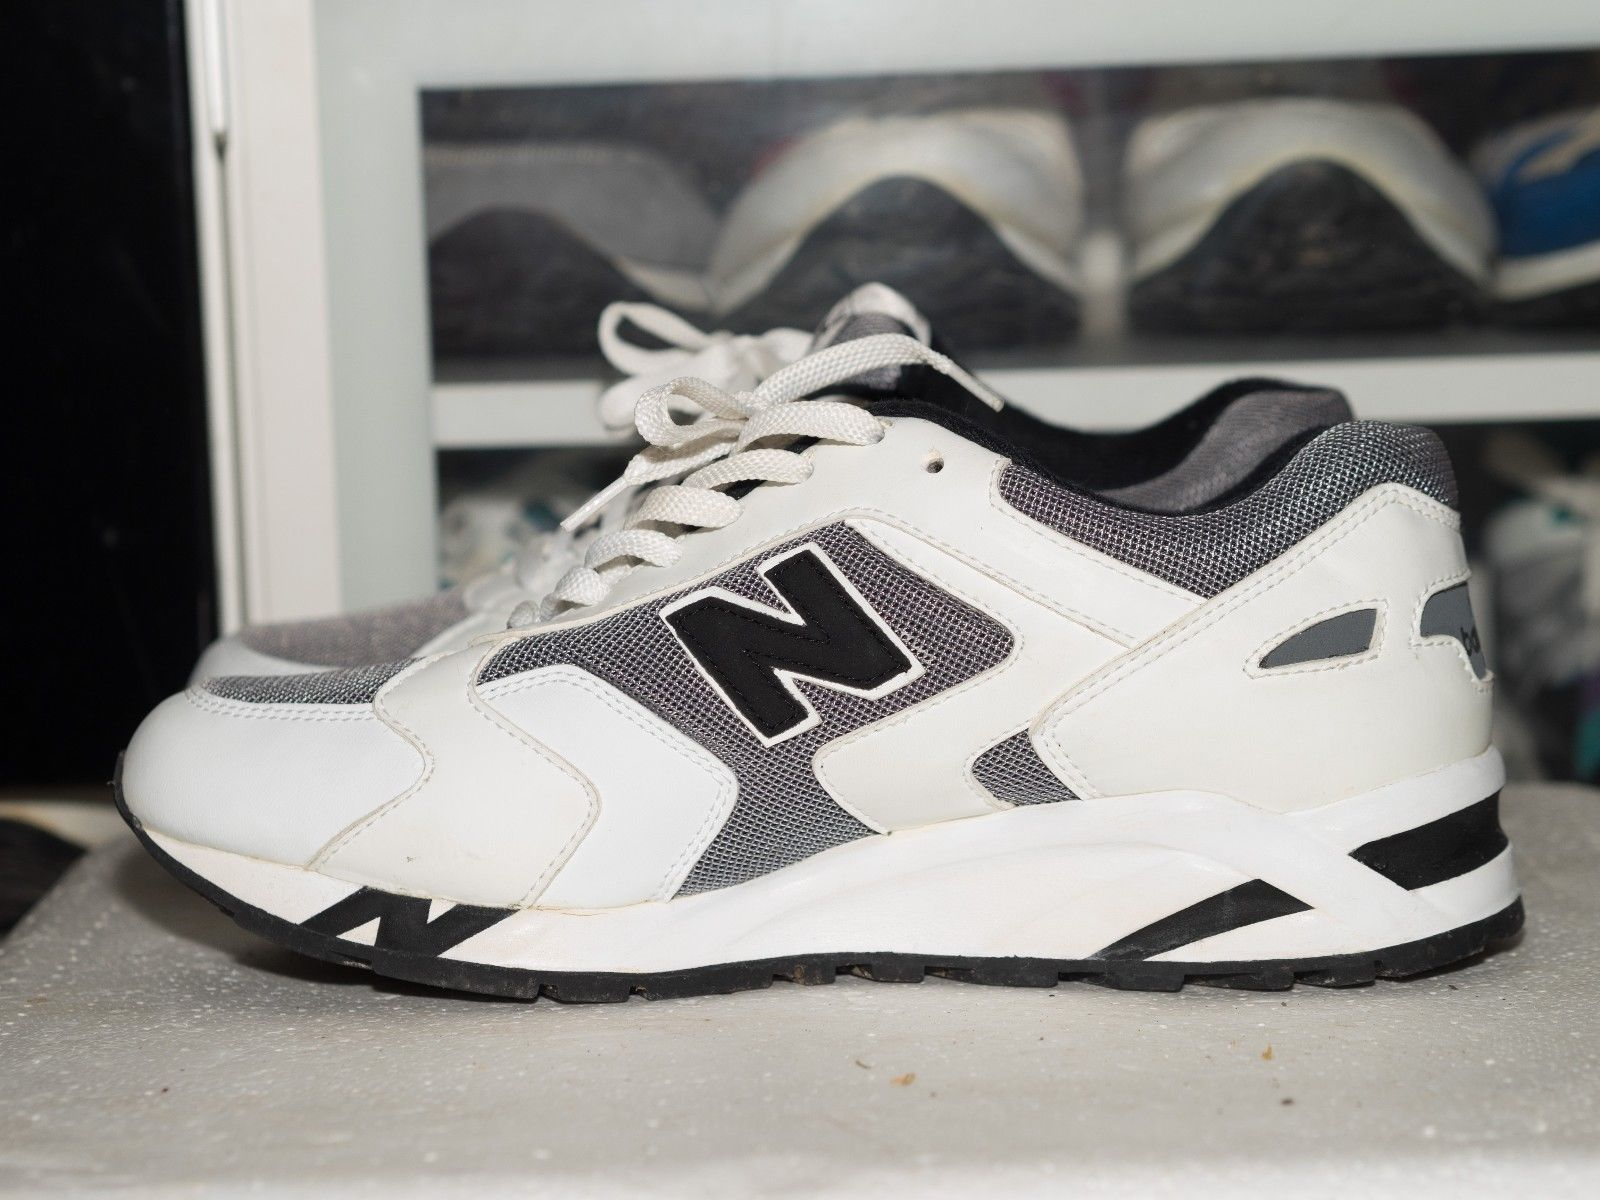 new product 7d654 0af23 New Balance M485GWB Vintage 1994 Hanon Crooked Tongues JCrew Mita Fieg SNS